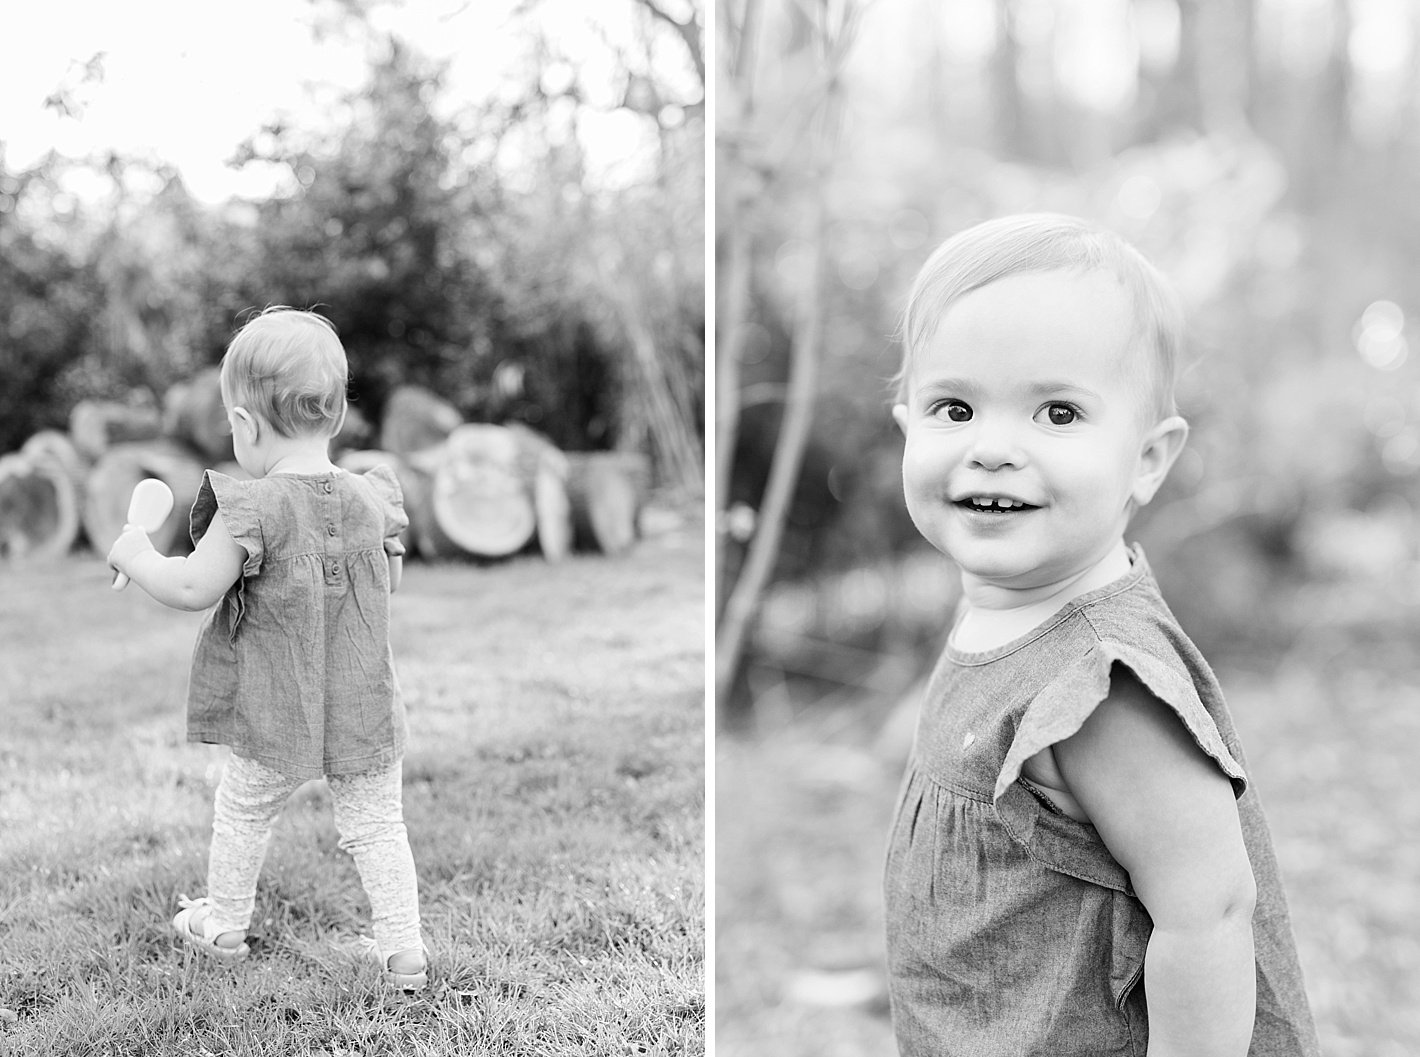 Spring family photos in Howard county MD, posing for family with 1 year old, arpasi photography, black and white photo of 1 year old, toddler smile in black and white